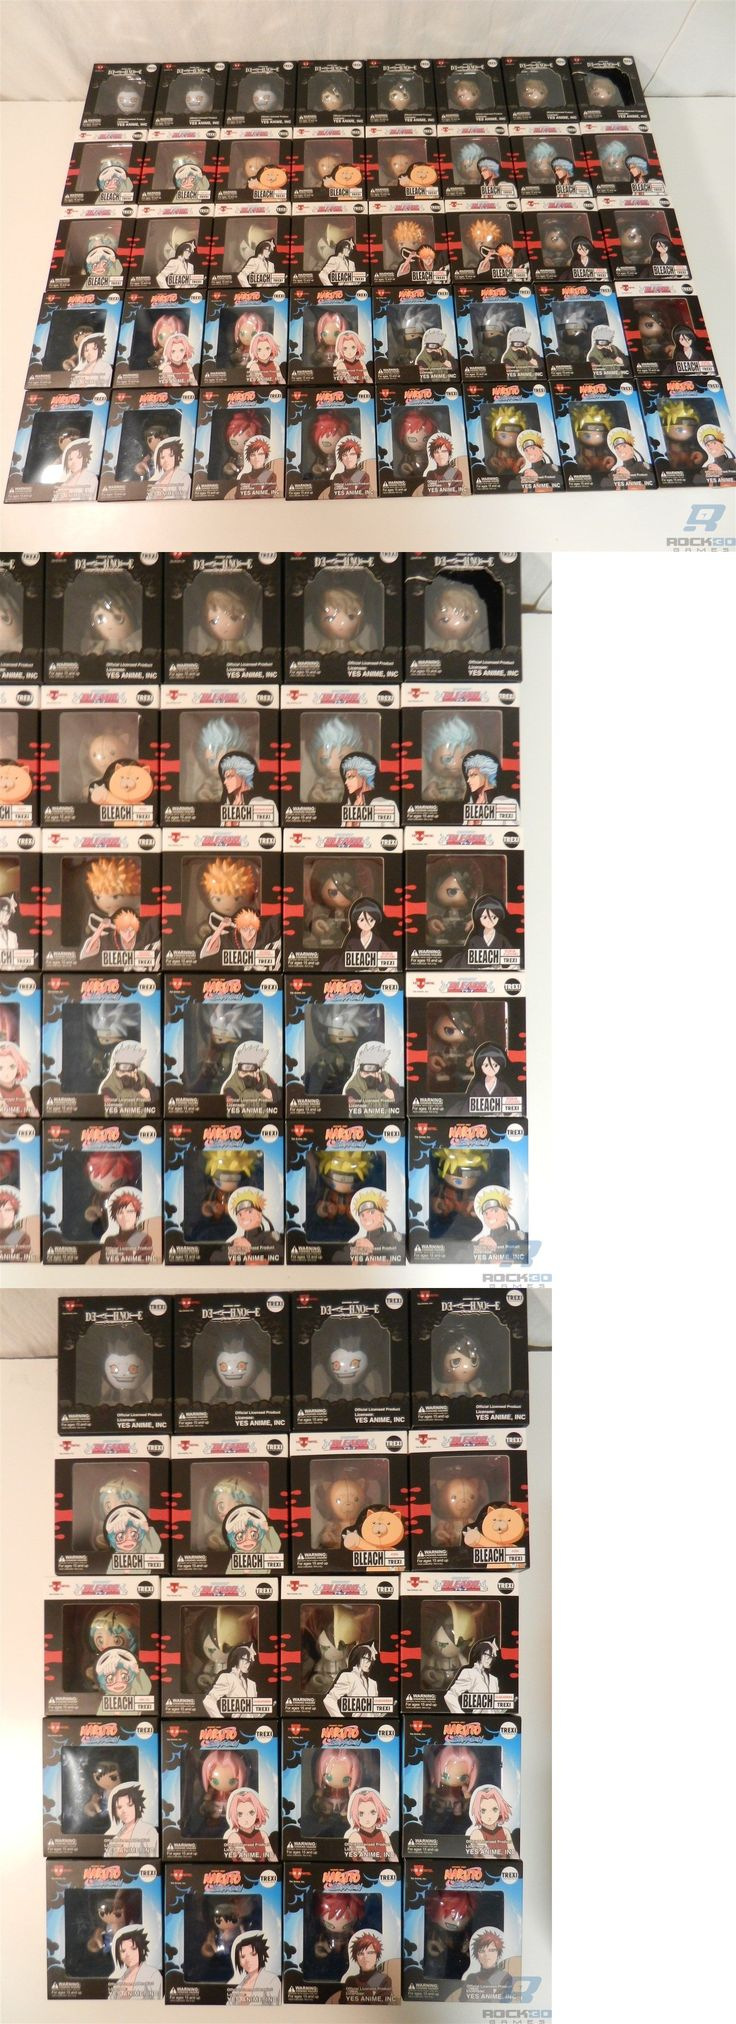 TV Movie and Character Toys 51031: Lot Of 40 Yes Anime Trexi Figures - Bleach, Deathnote, Naruto - Ryuk, Ichigo -> BUY IT NOW ONLY: $234.99 on eBay!